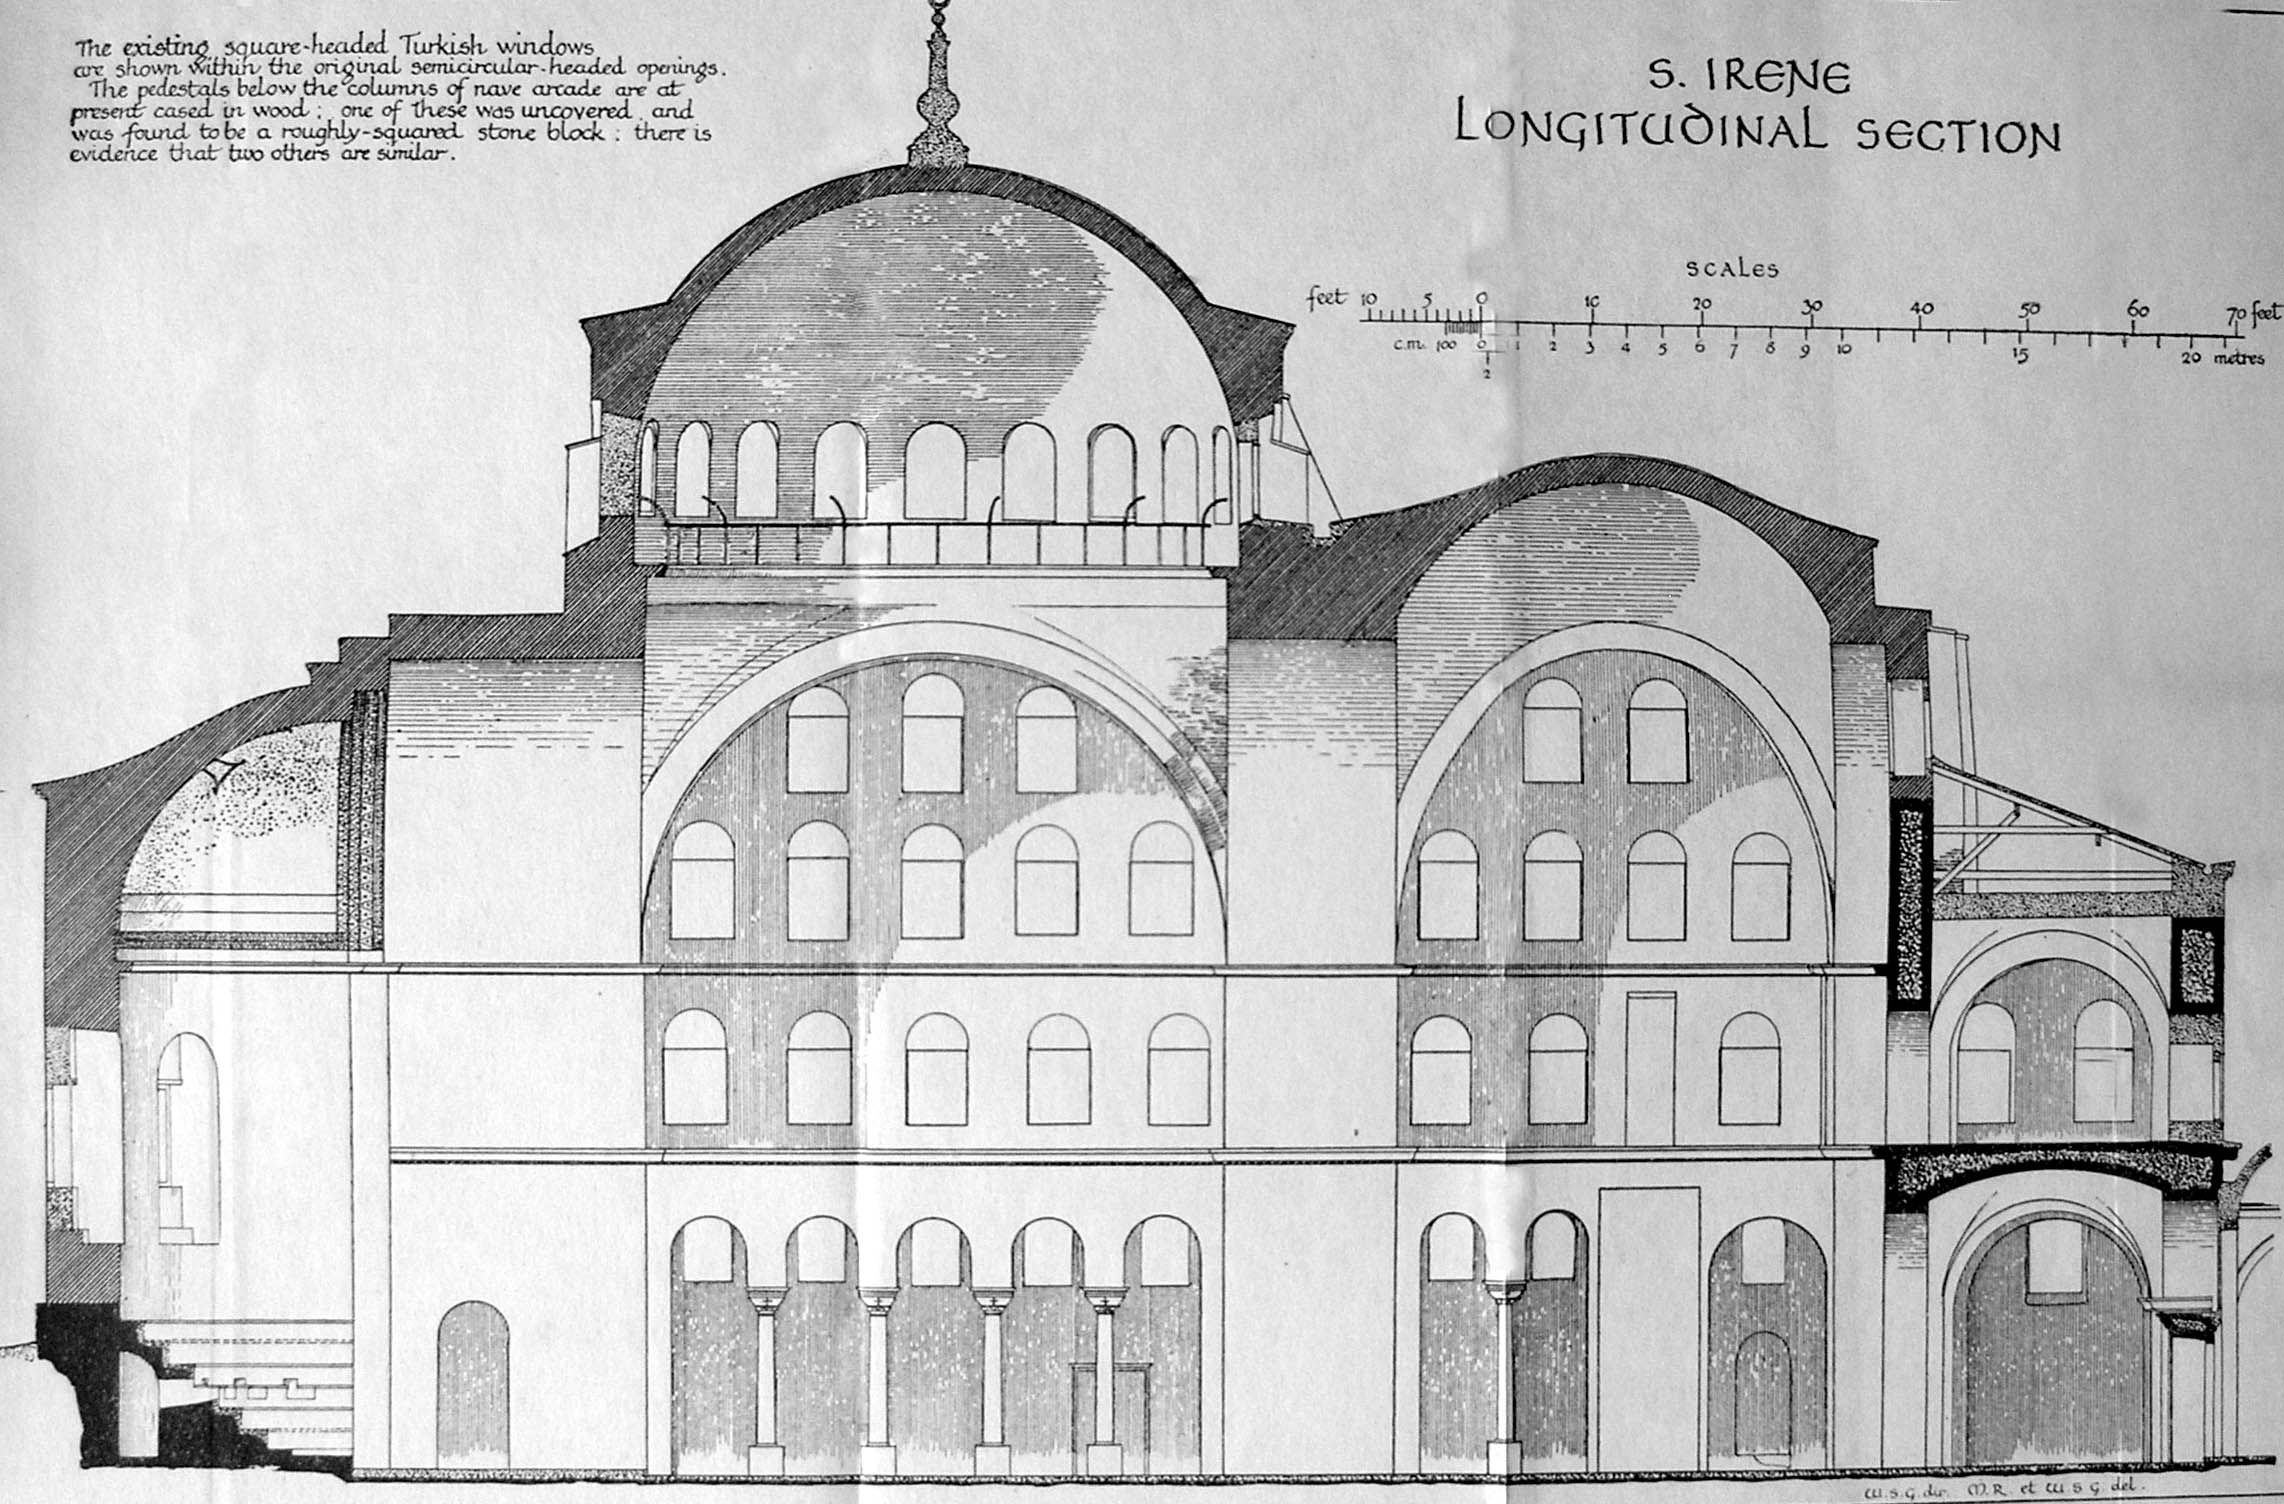 S Irene Basilica Section 2 Domes Over The Nave And Half Domes Over The Apse Thrust From The Nave D Byzantine Architecture Hagia Irene Architectural Section